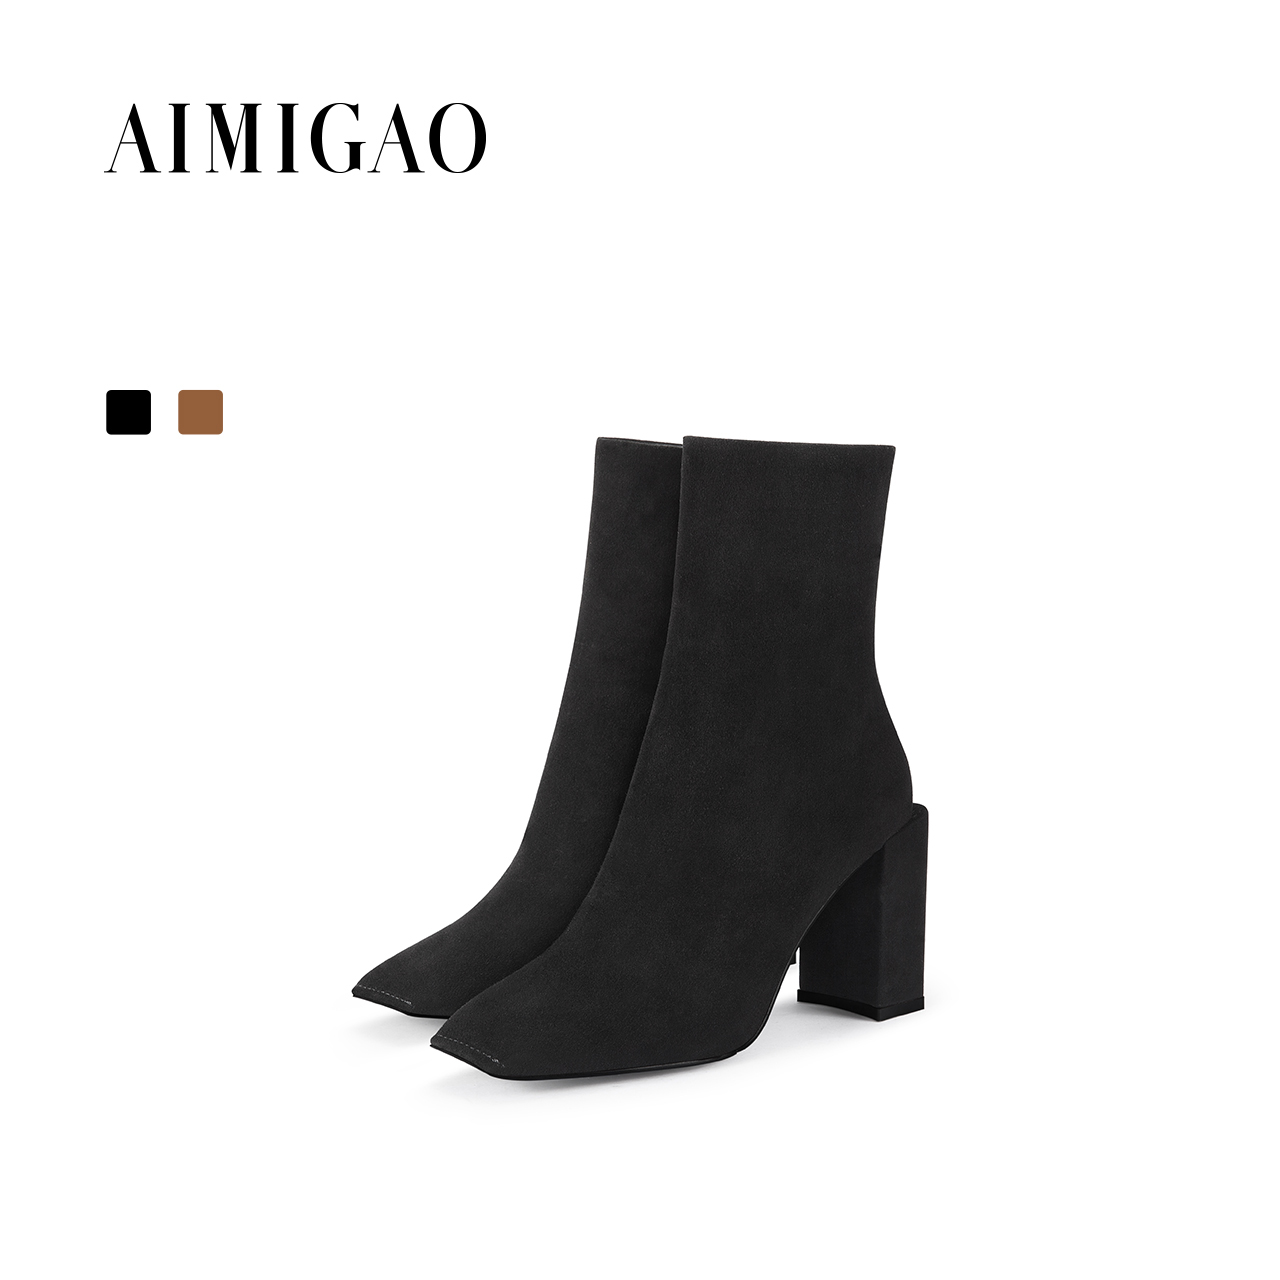 AIMIGAO suede leather fashion women high heel ankle boots side zipper ankle boots para mulheres black 2017 autumn winter new цена и фото